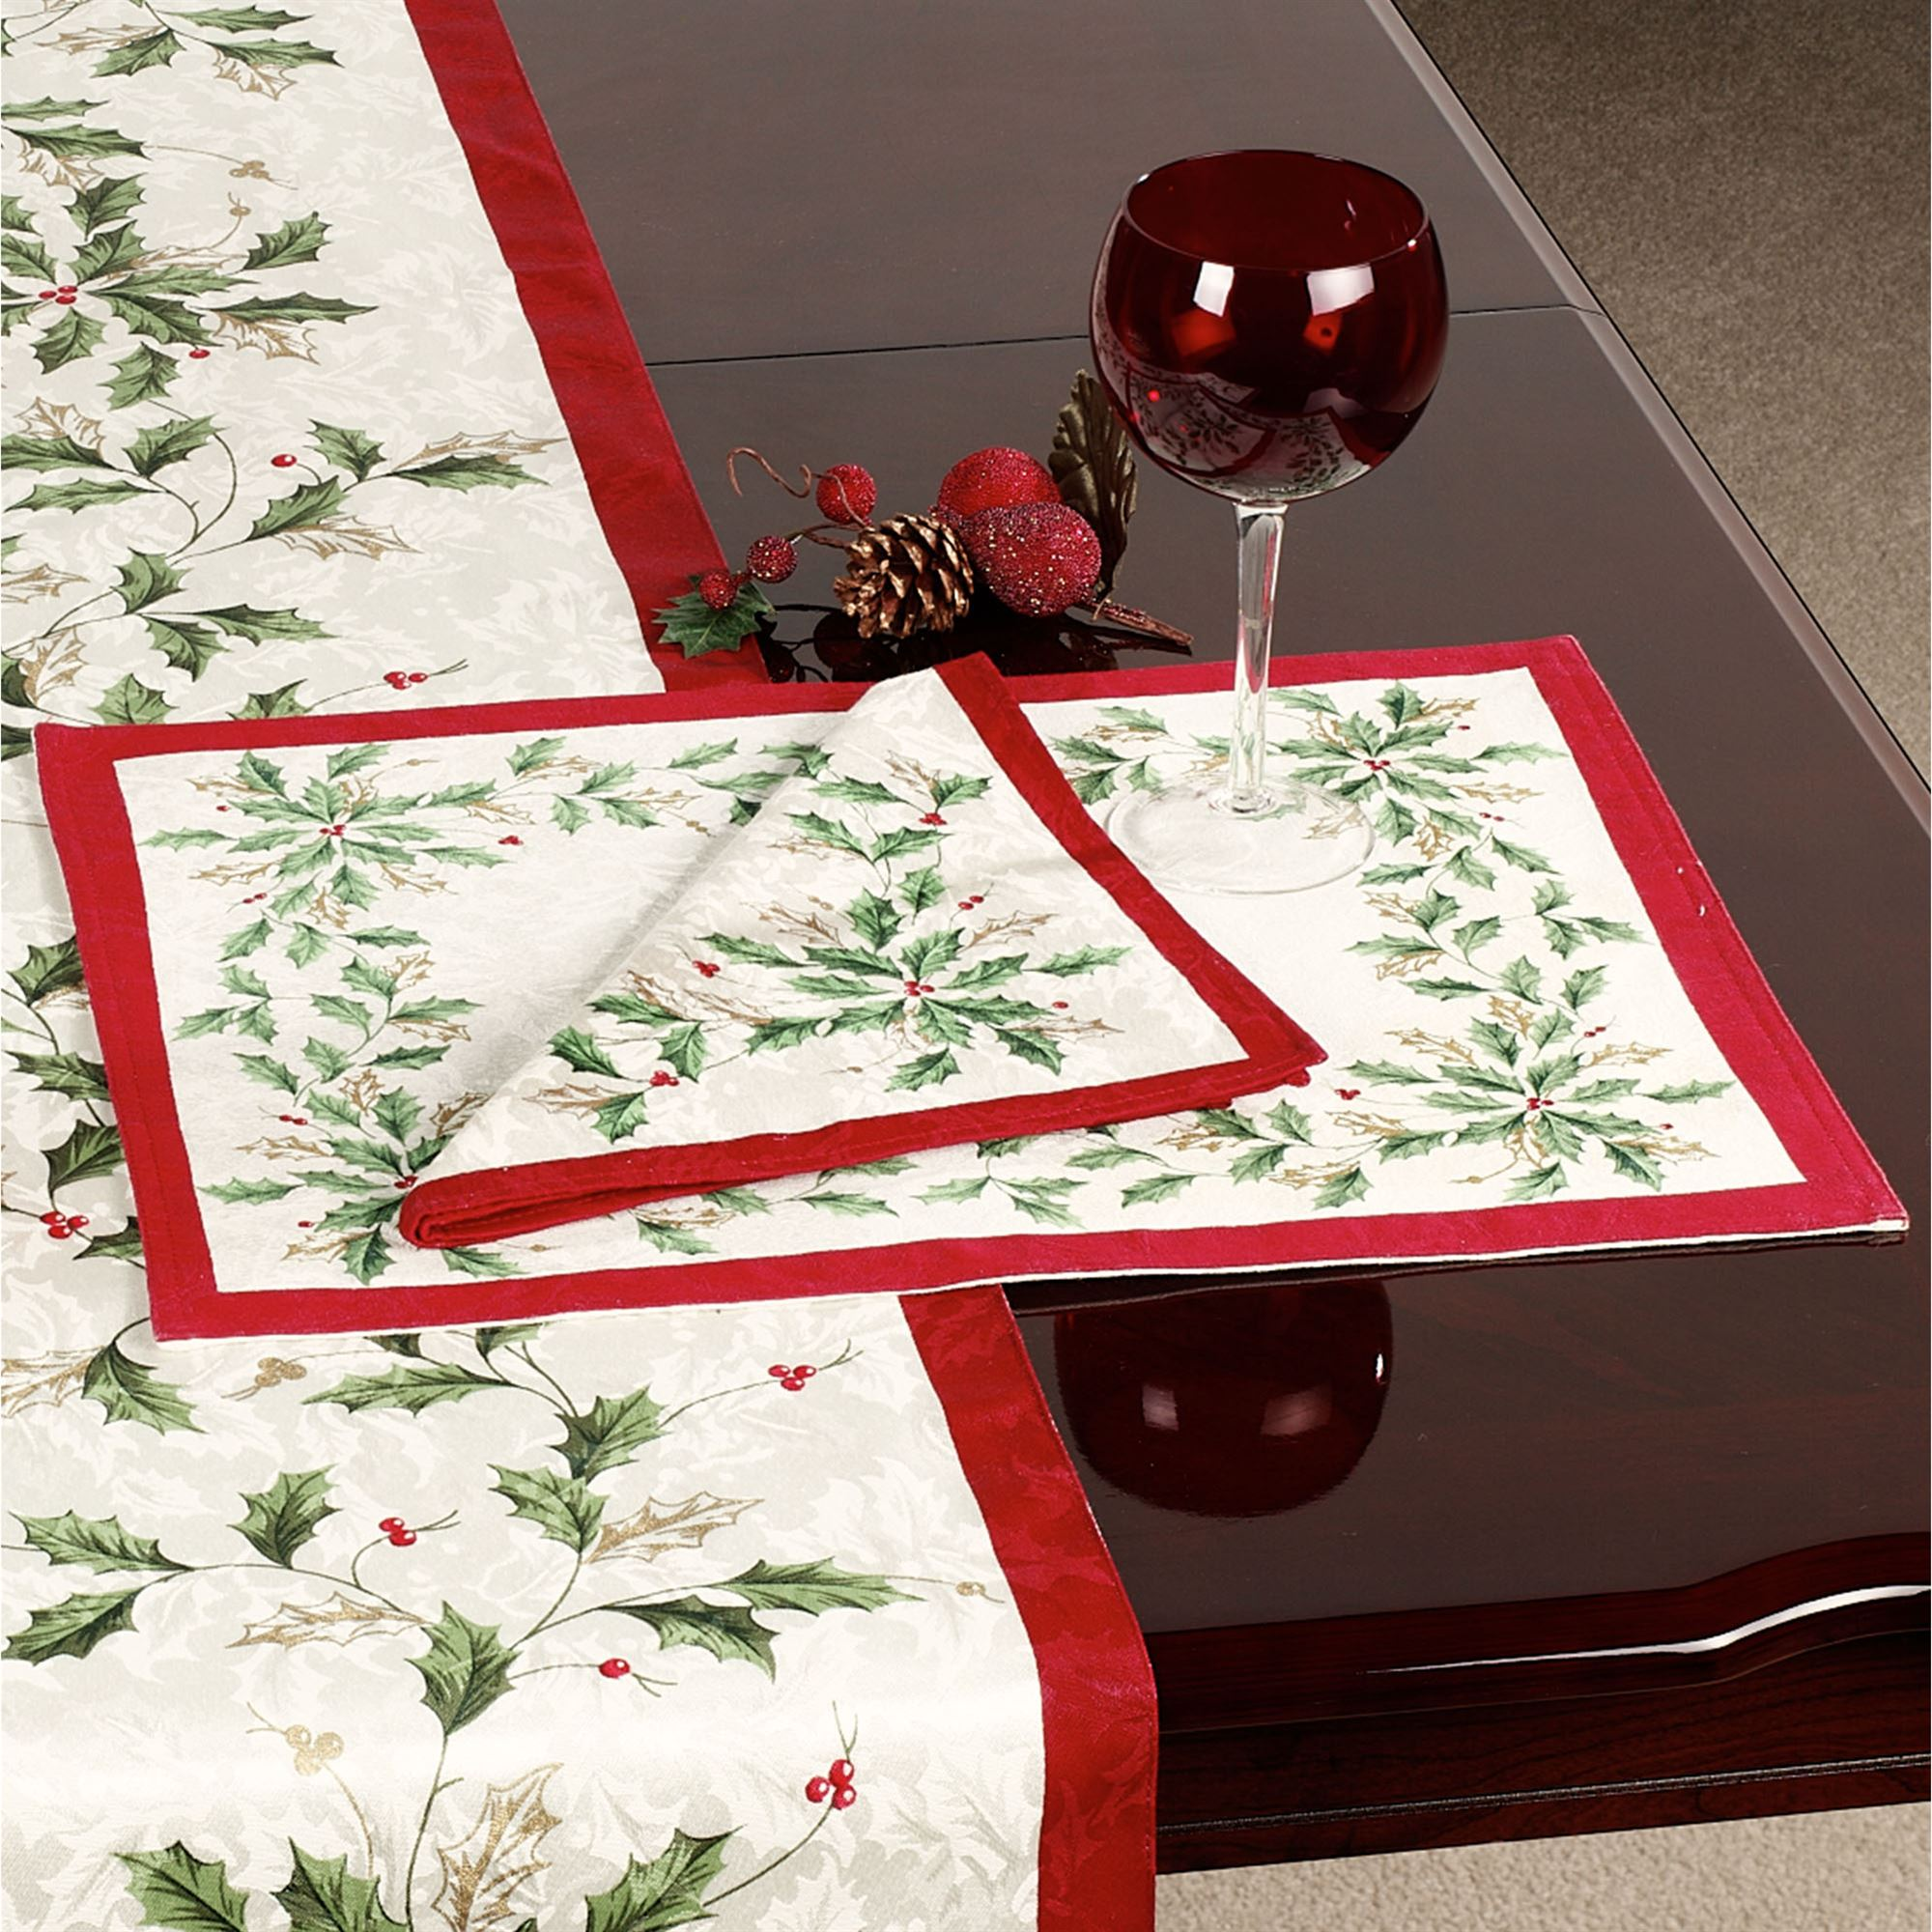 lenox christmas chair covers small comfy chairs holiday table runner touch to zoom